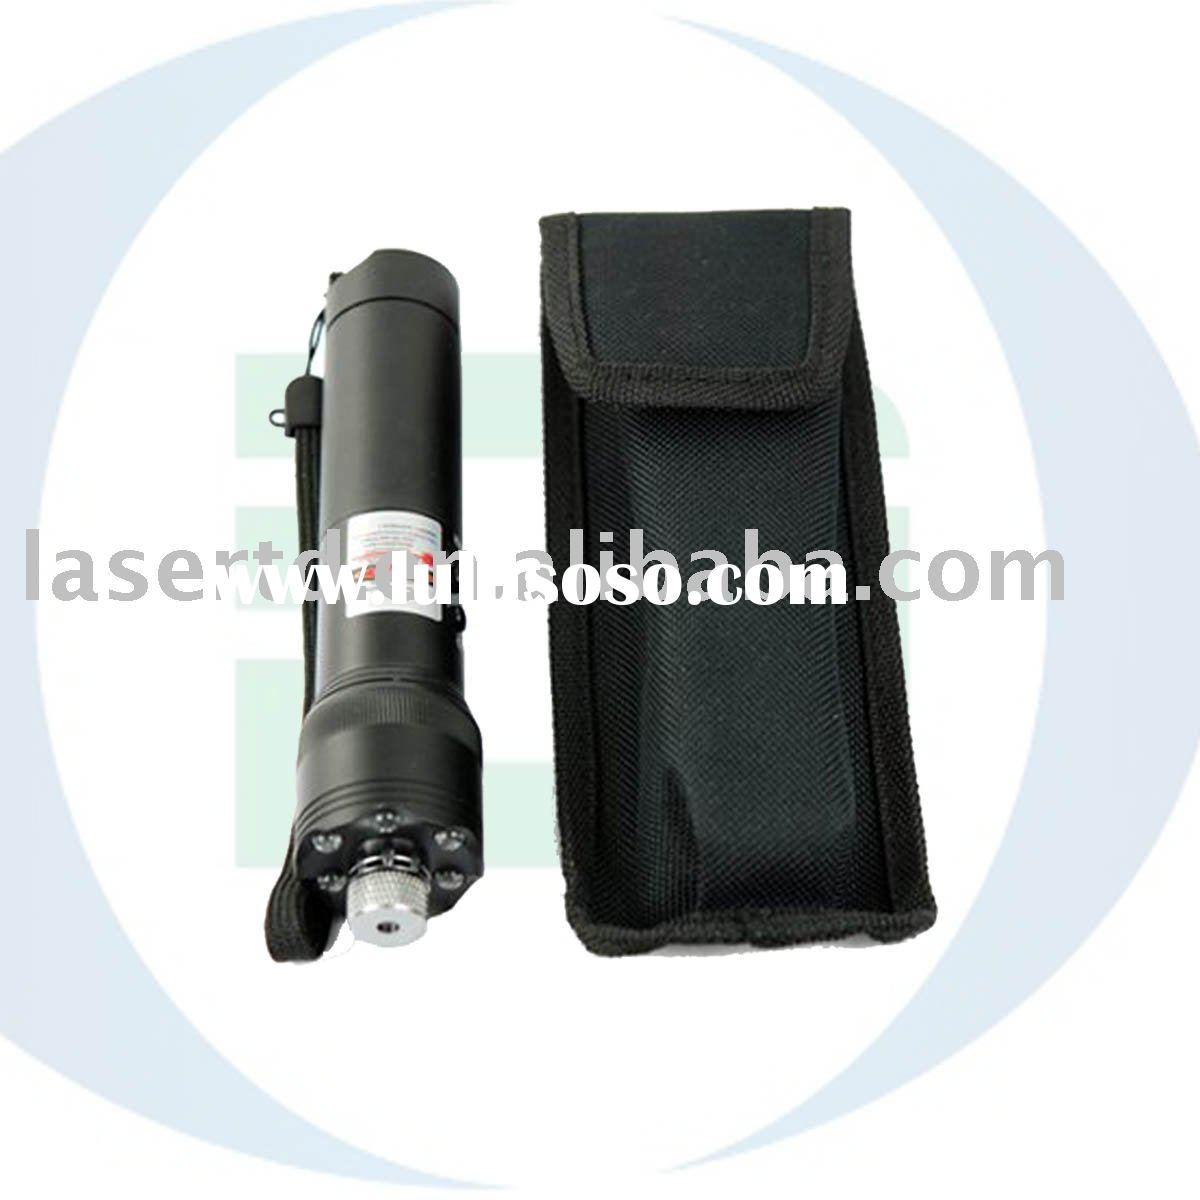 Ultra Power 200mW Green Laser Pointer w LED Torch Light